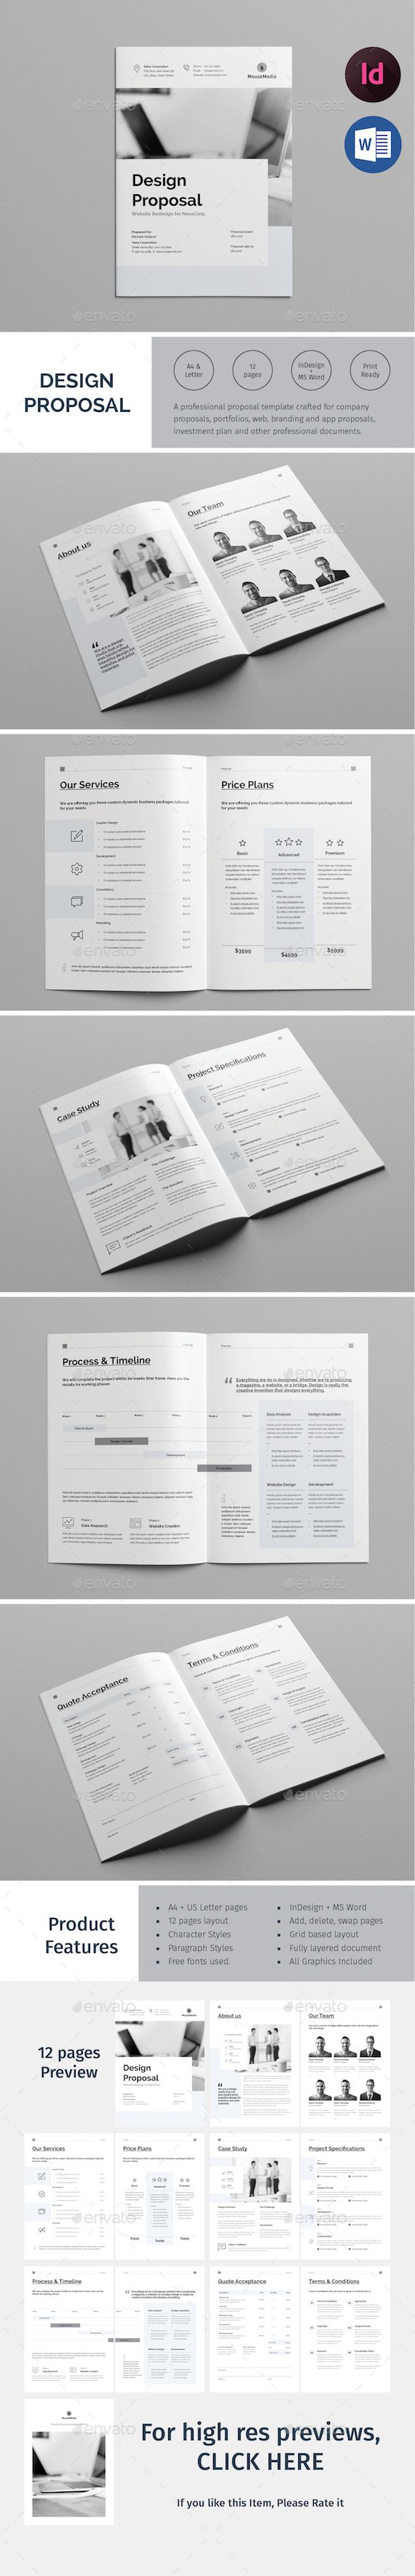 Best Best Proposal Templates Images On   Invoice